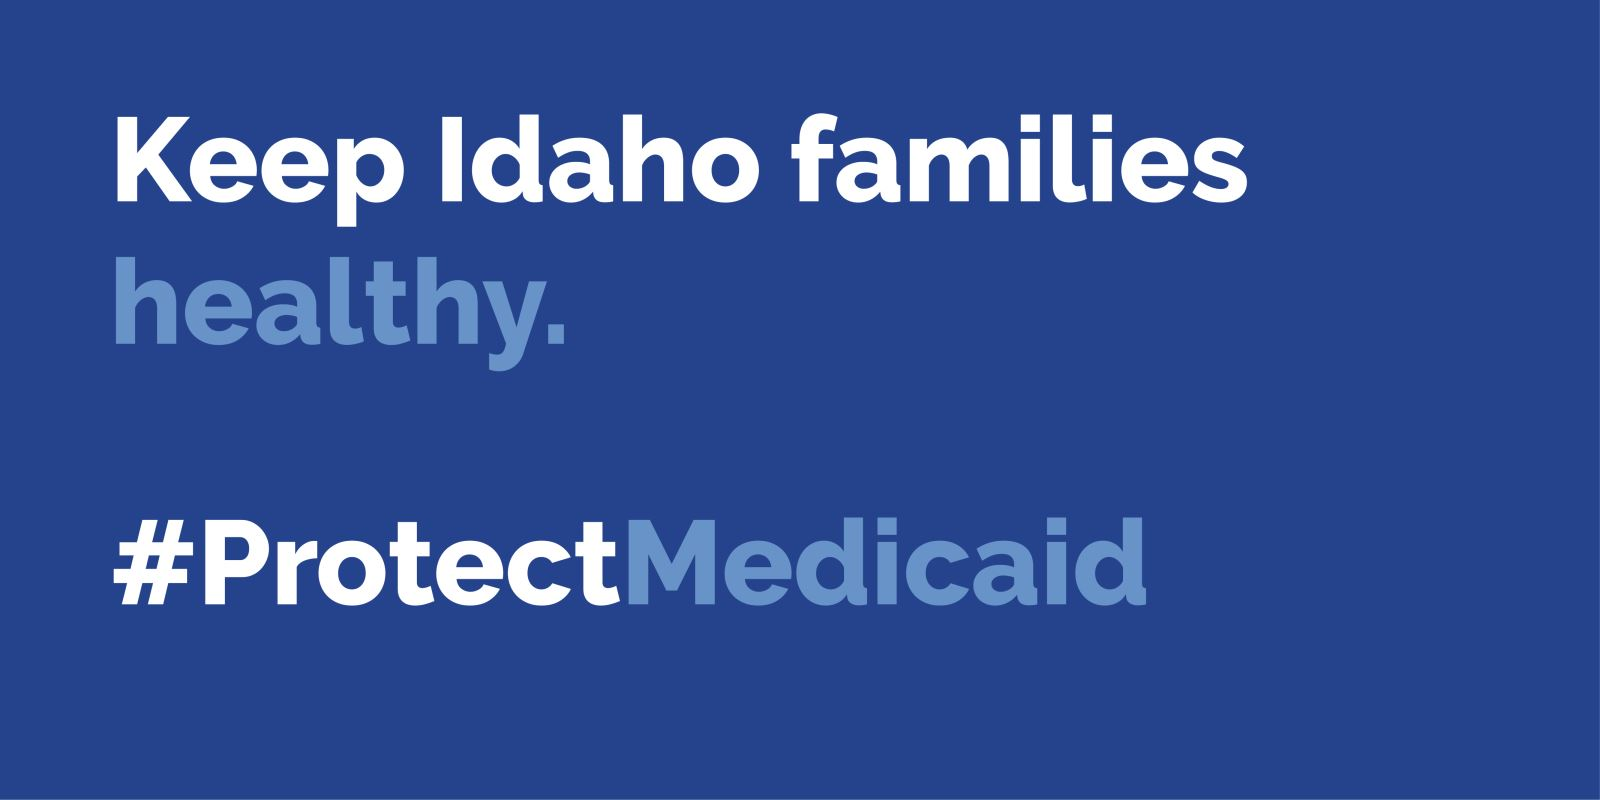 Idaho Democratic Party